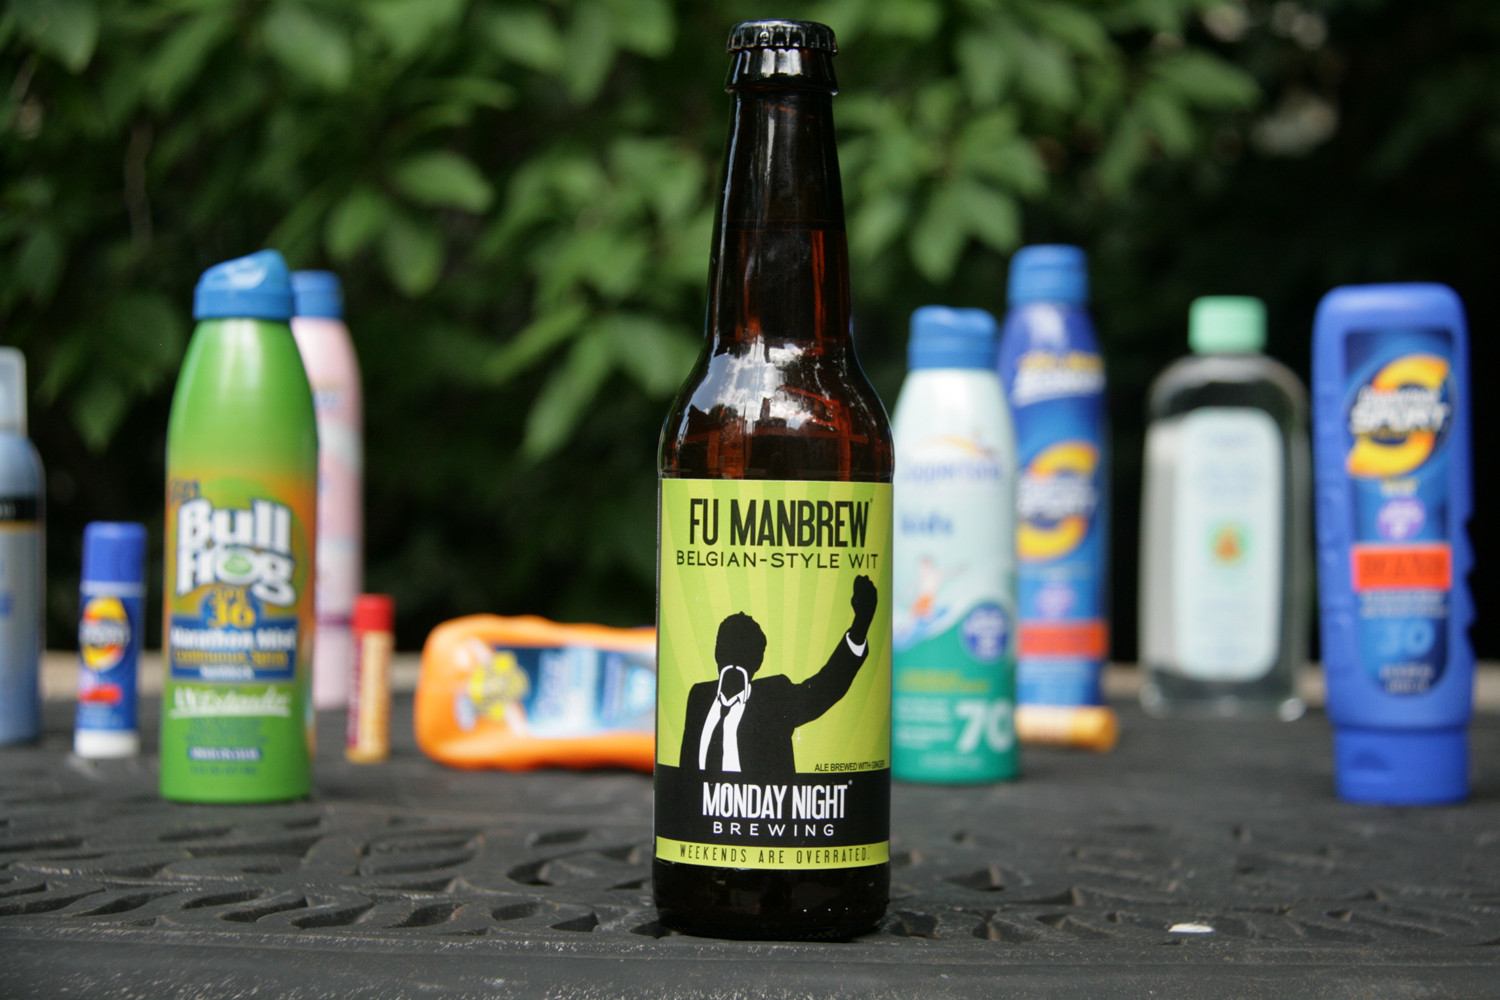 Try Fu Manbrew, a great seasonal craft summer night beer.